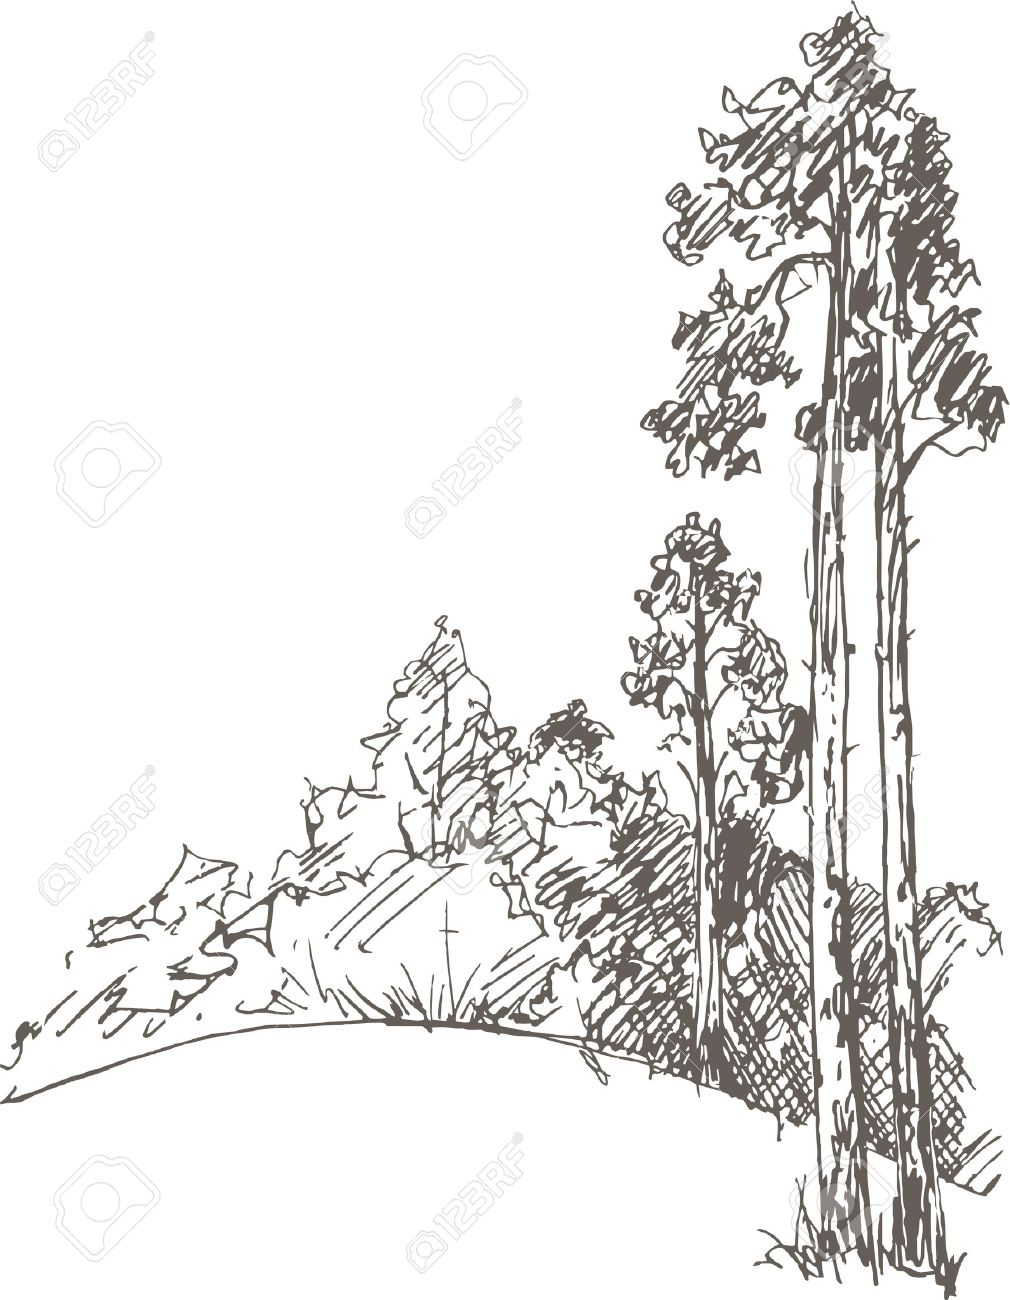 Pine trees and bushes drawing by pencil sketch of wild nature forest sketch